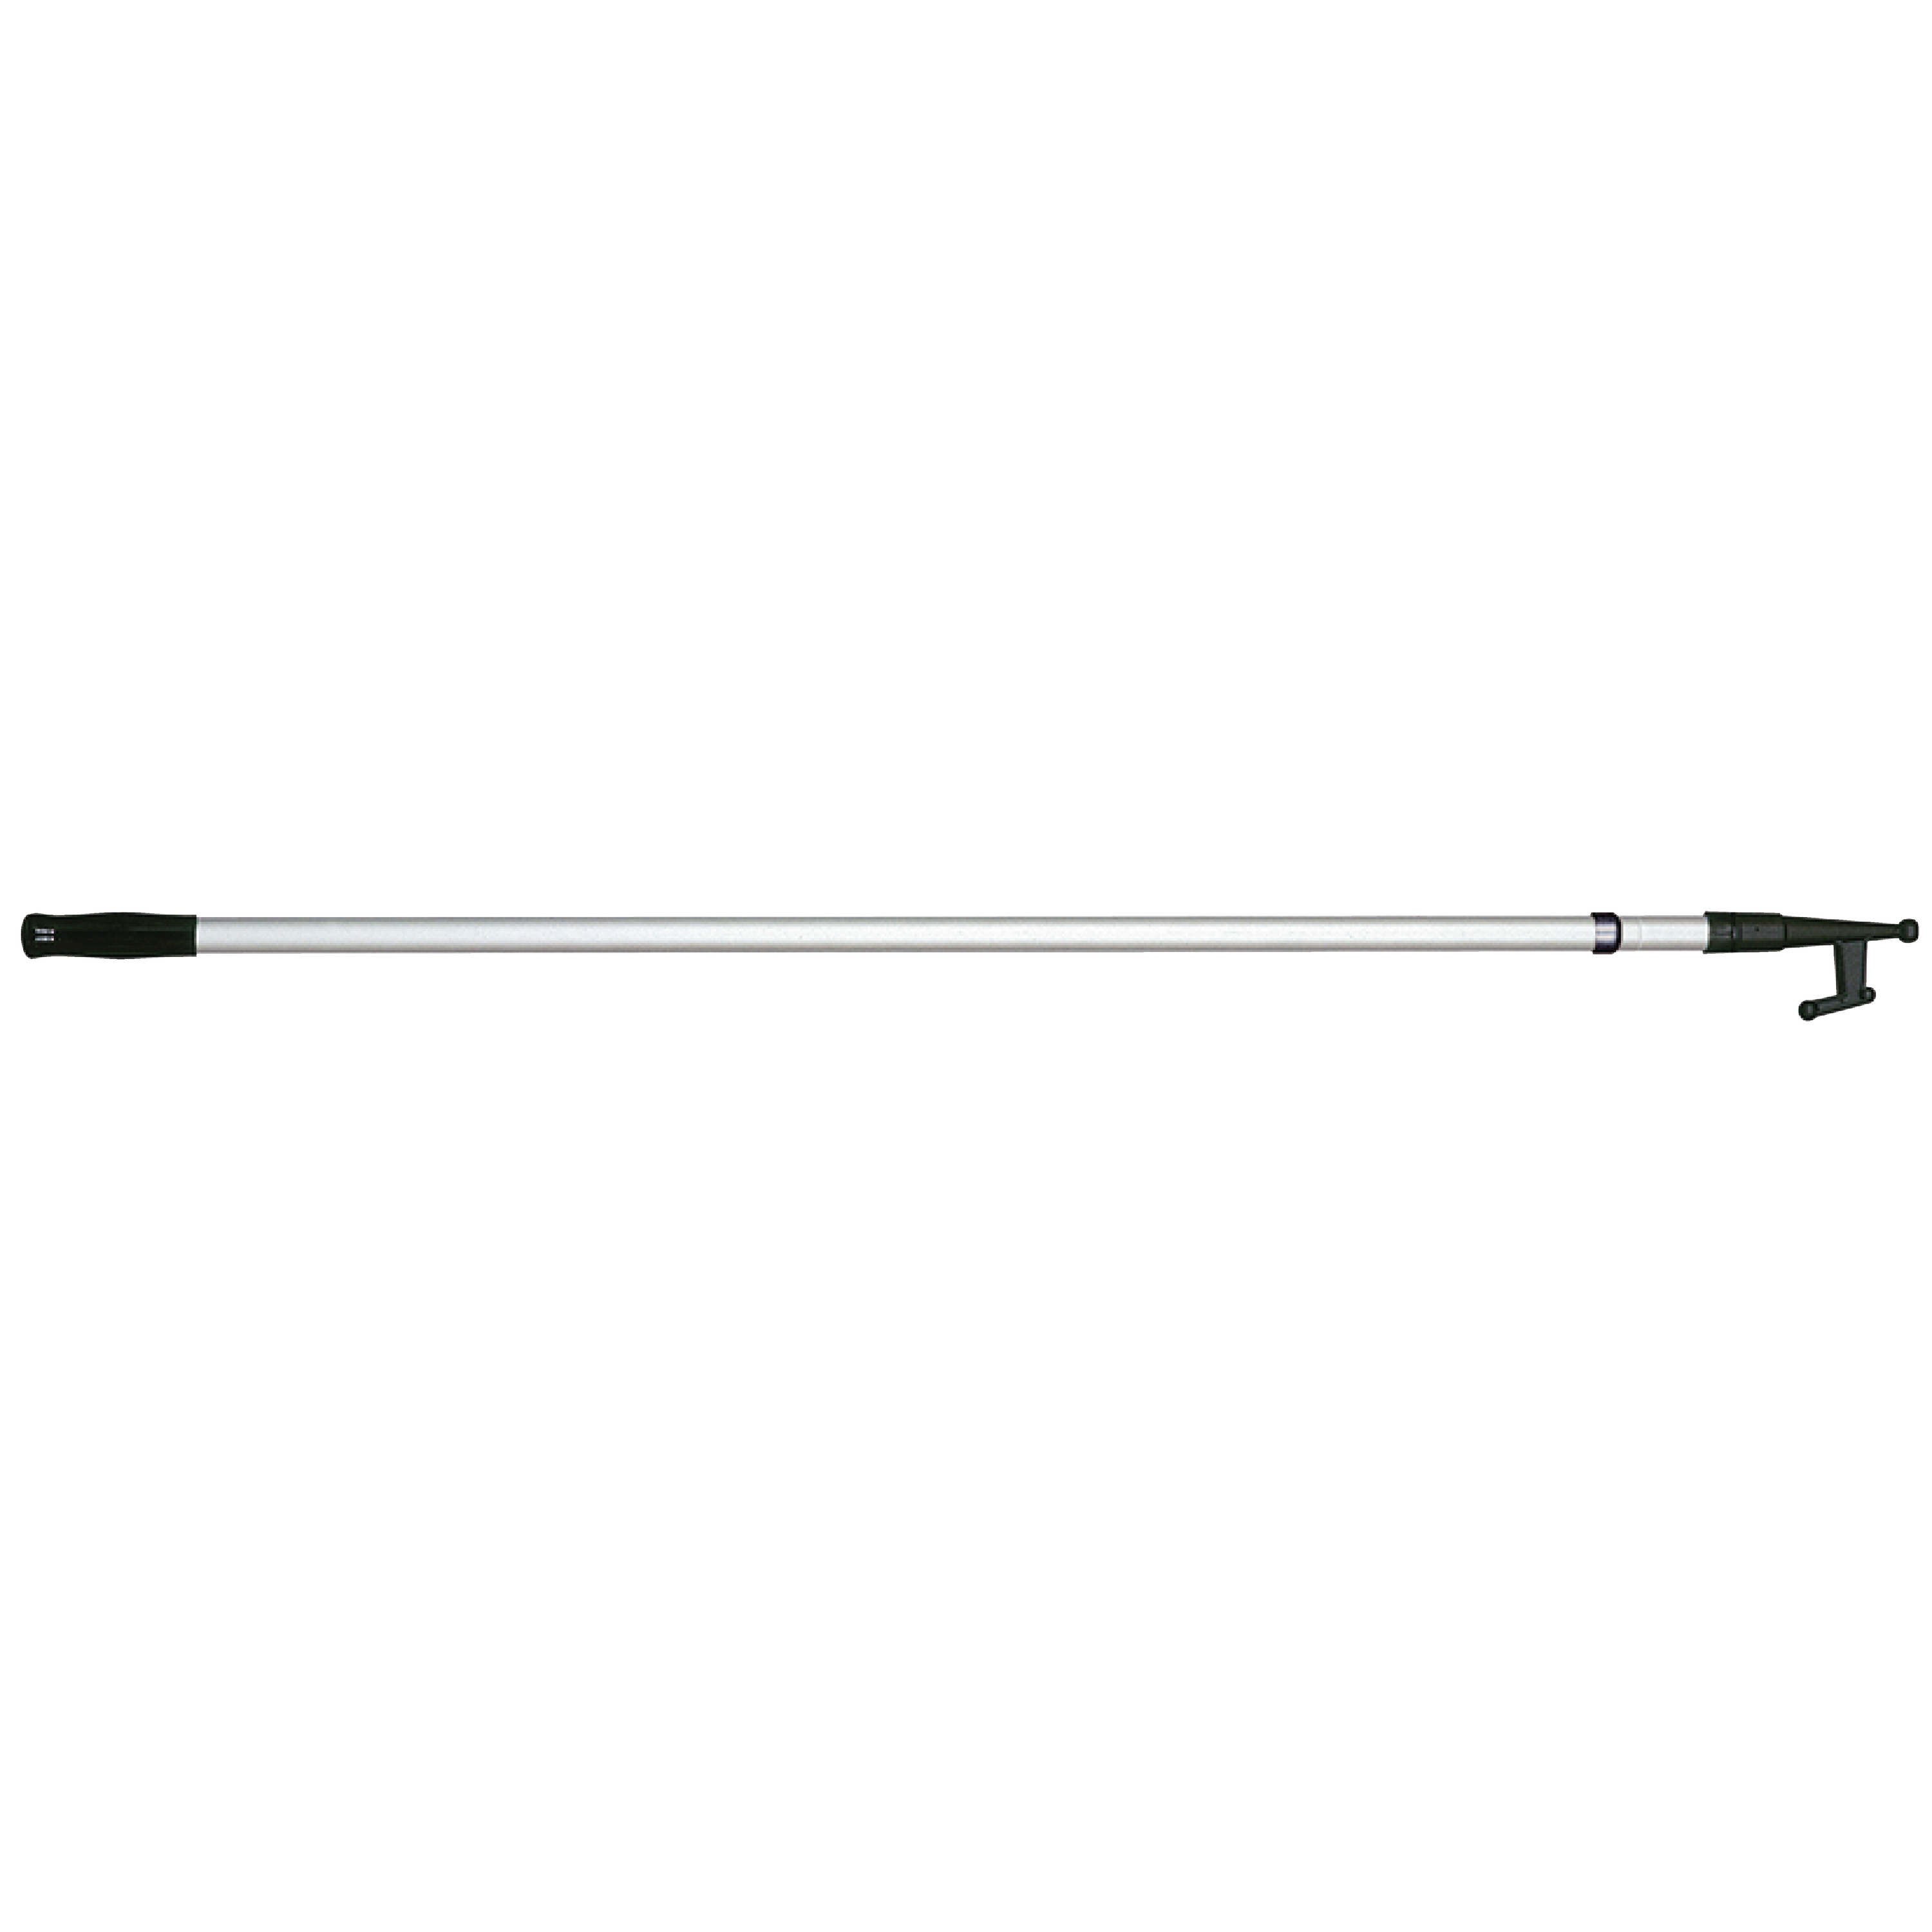 Star Brite Telescoping Boat Hook 40609